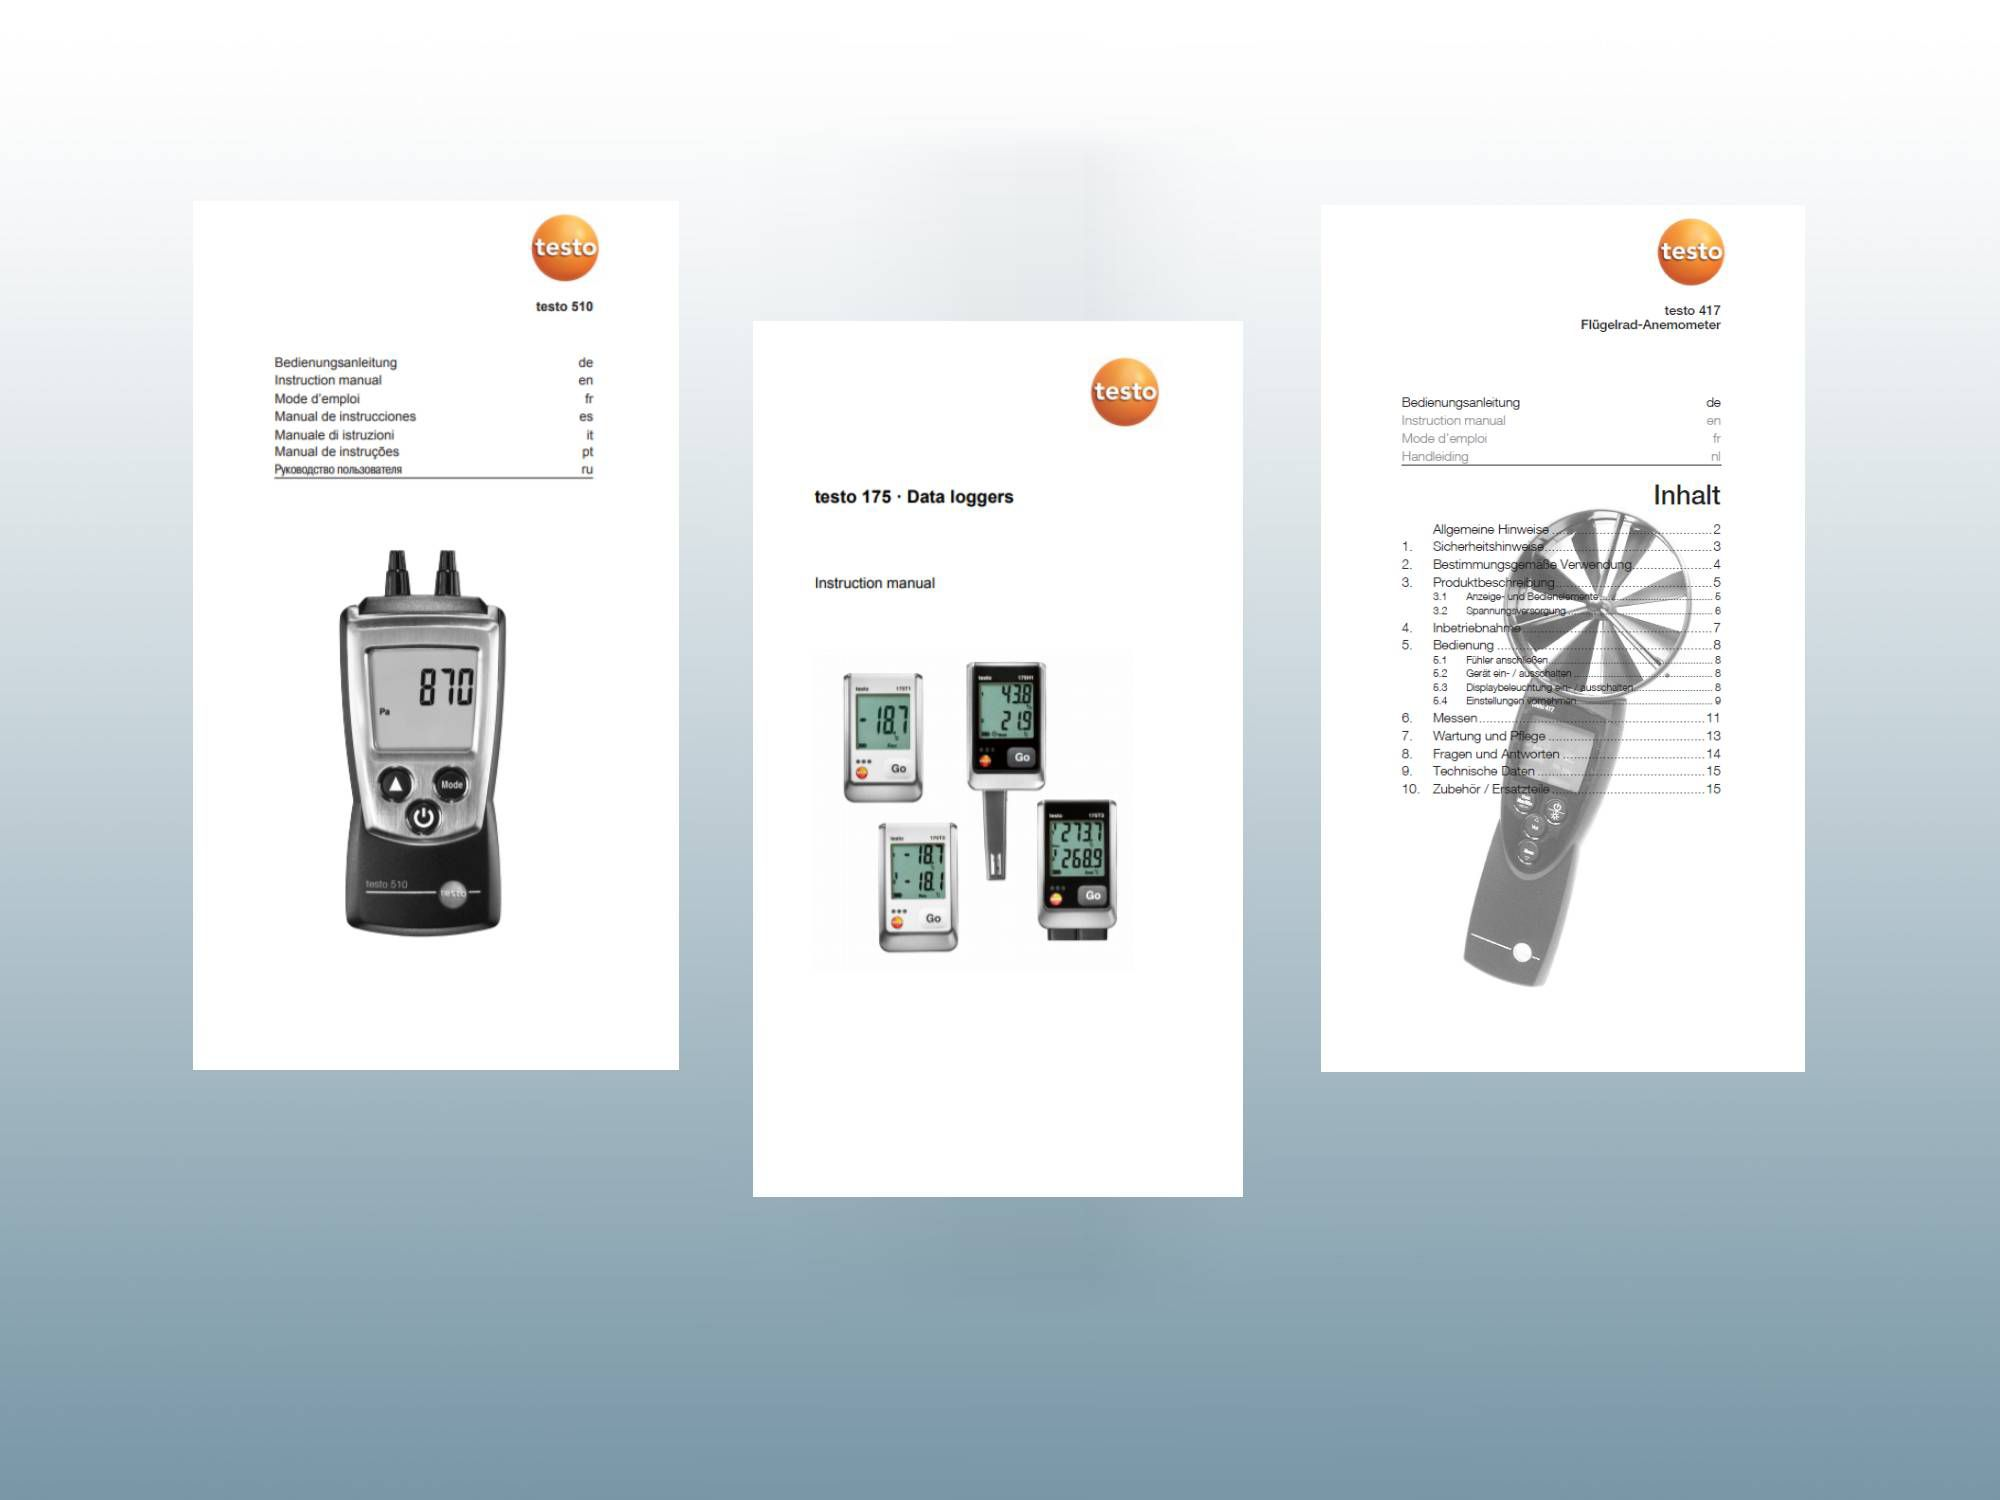 Instruction manuals for Testo products